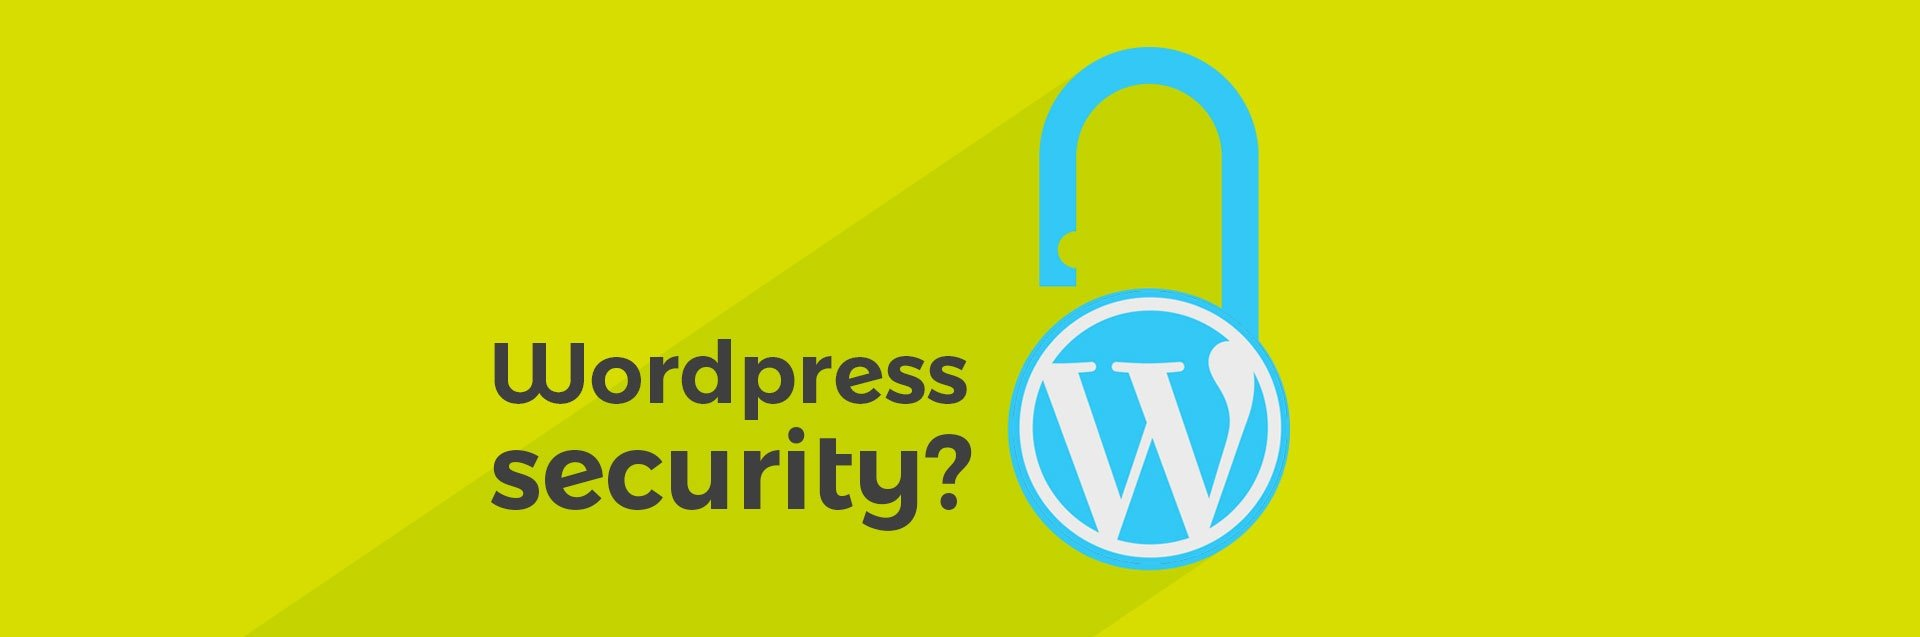 wordpress security sicurezza sito web